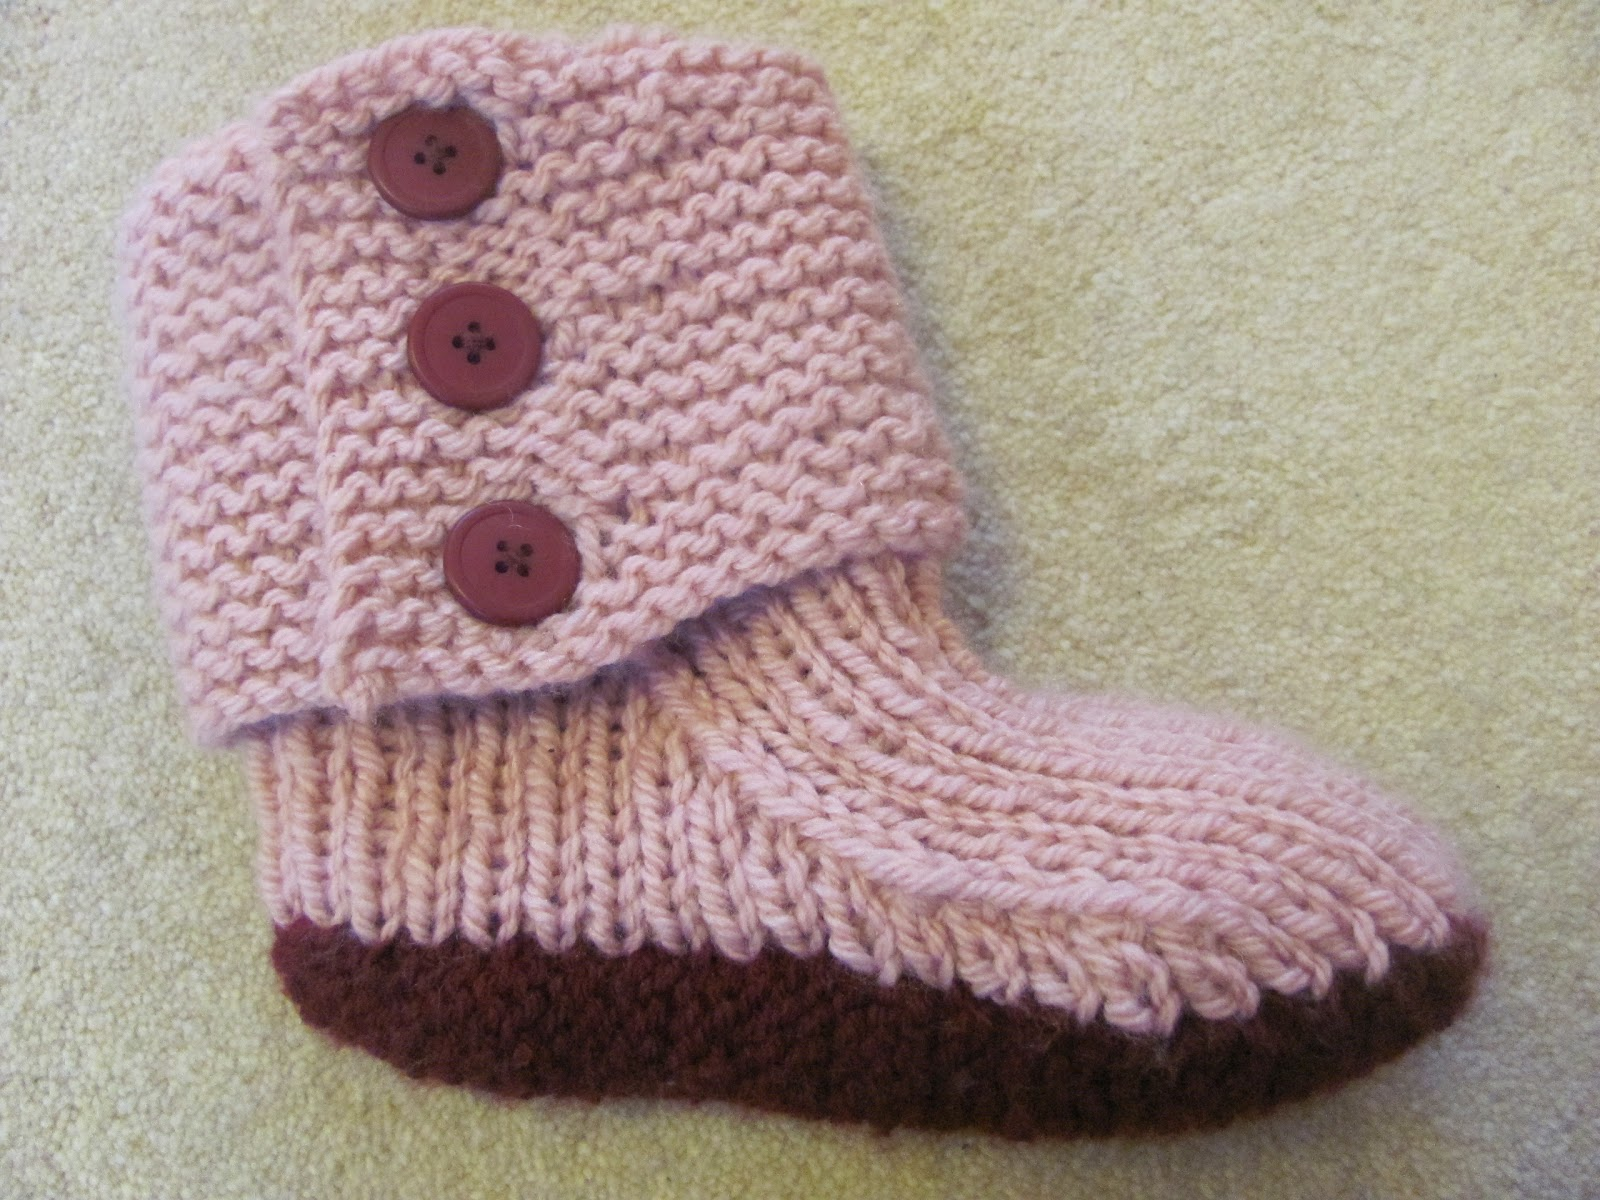 BED SOCK KNITTING PATTERNS